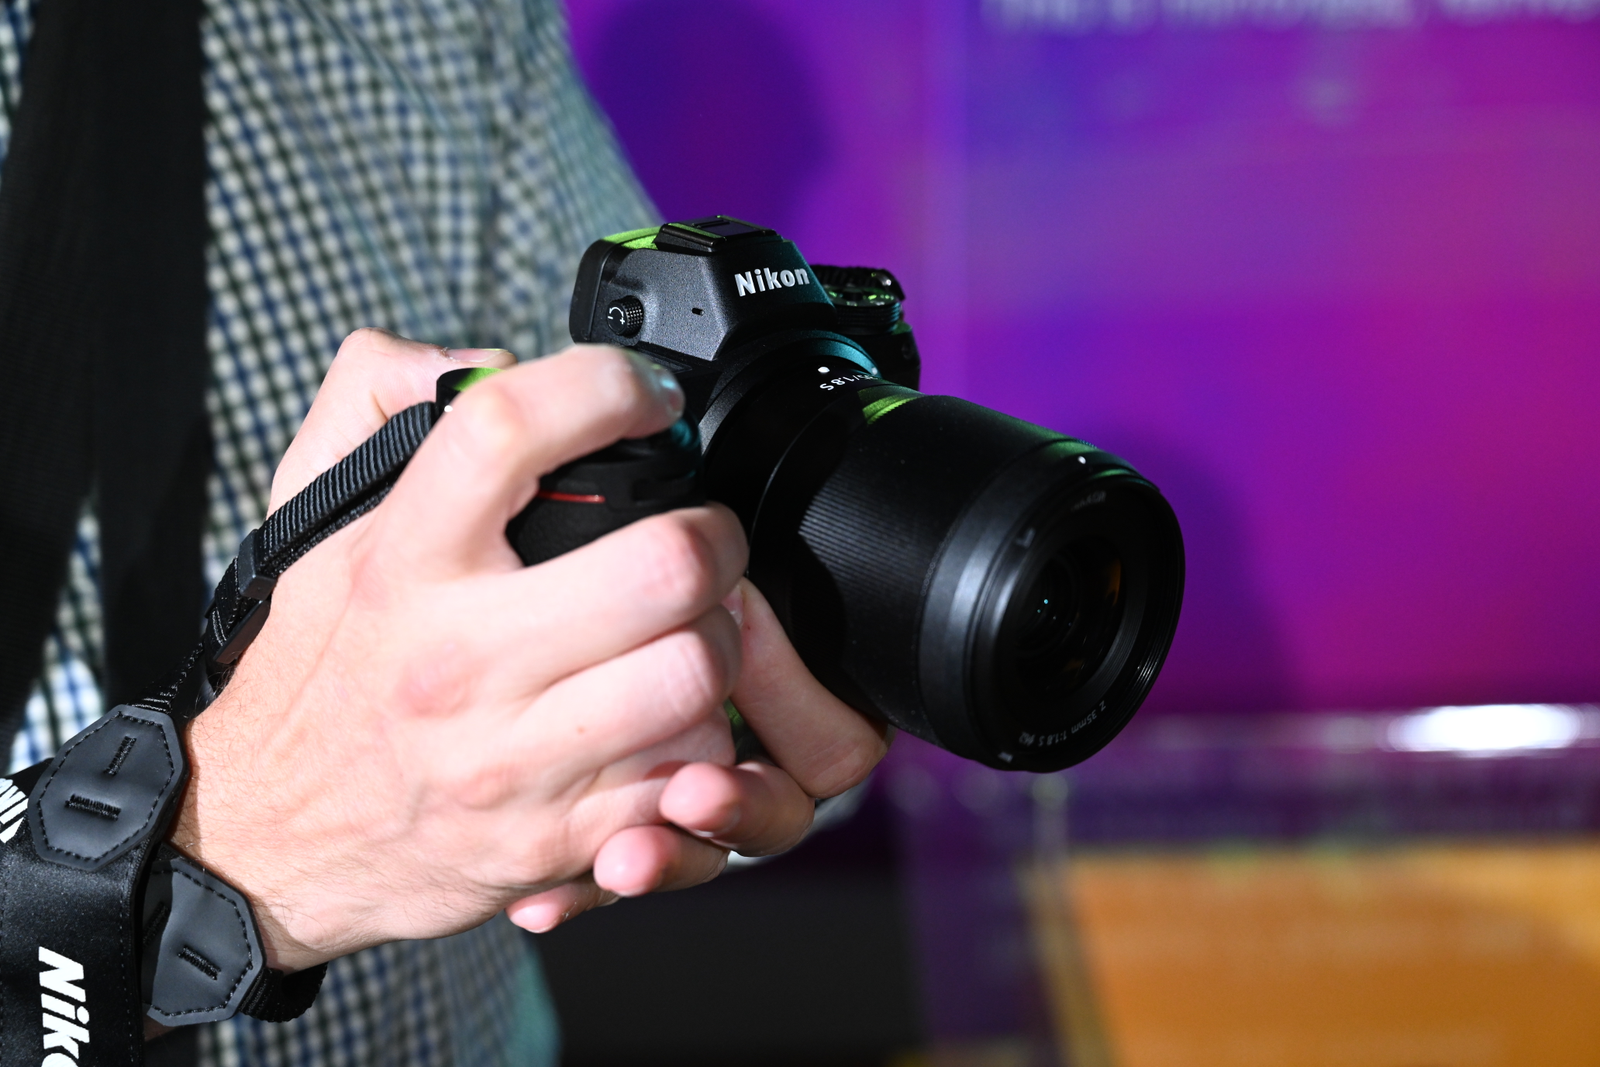 Here are a few more shots of the the Nikon Z7, shot by another Nikon Z7.